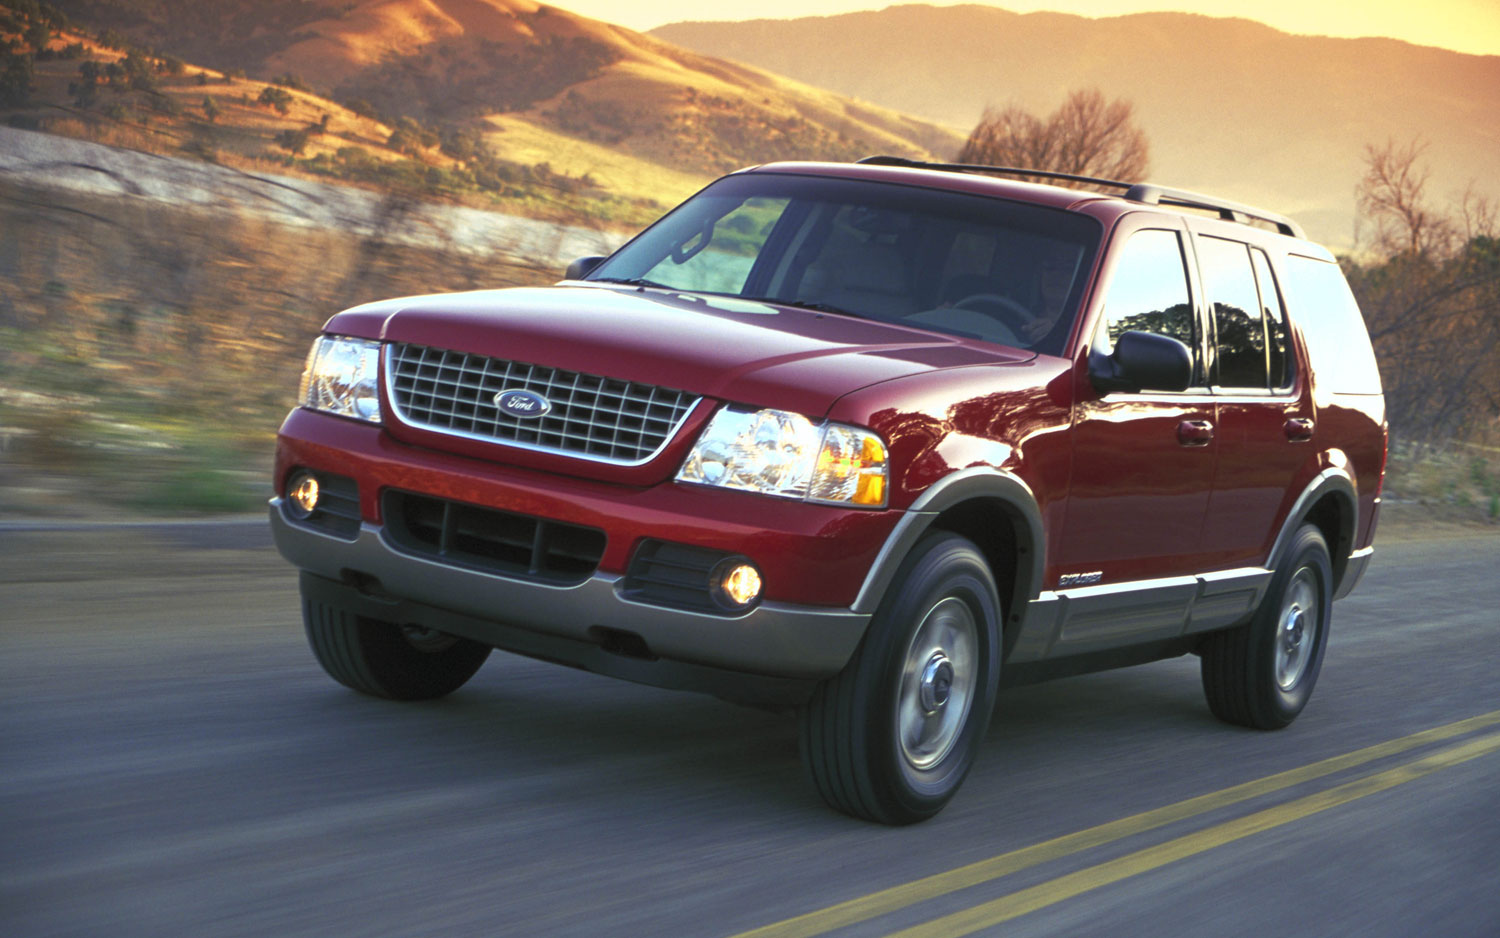 2006 Ford Truck Old Hondas Top List Of Stolen Vehicles In 2011